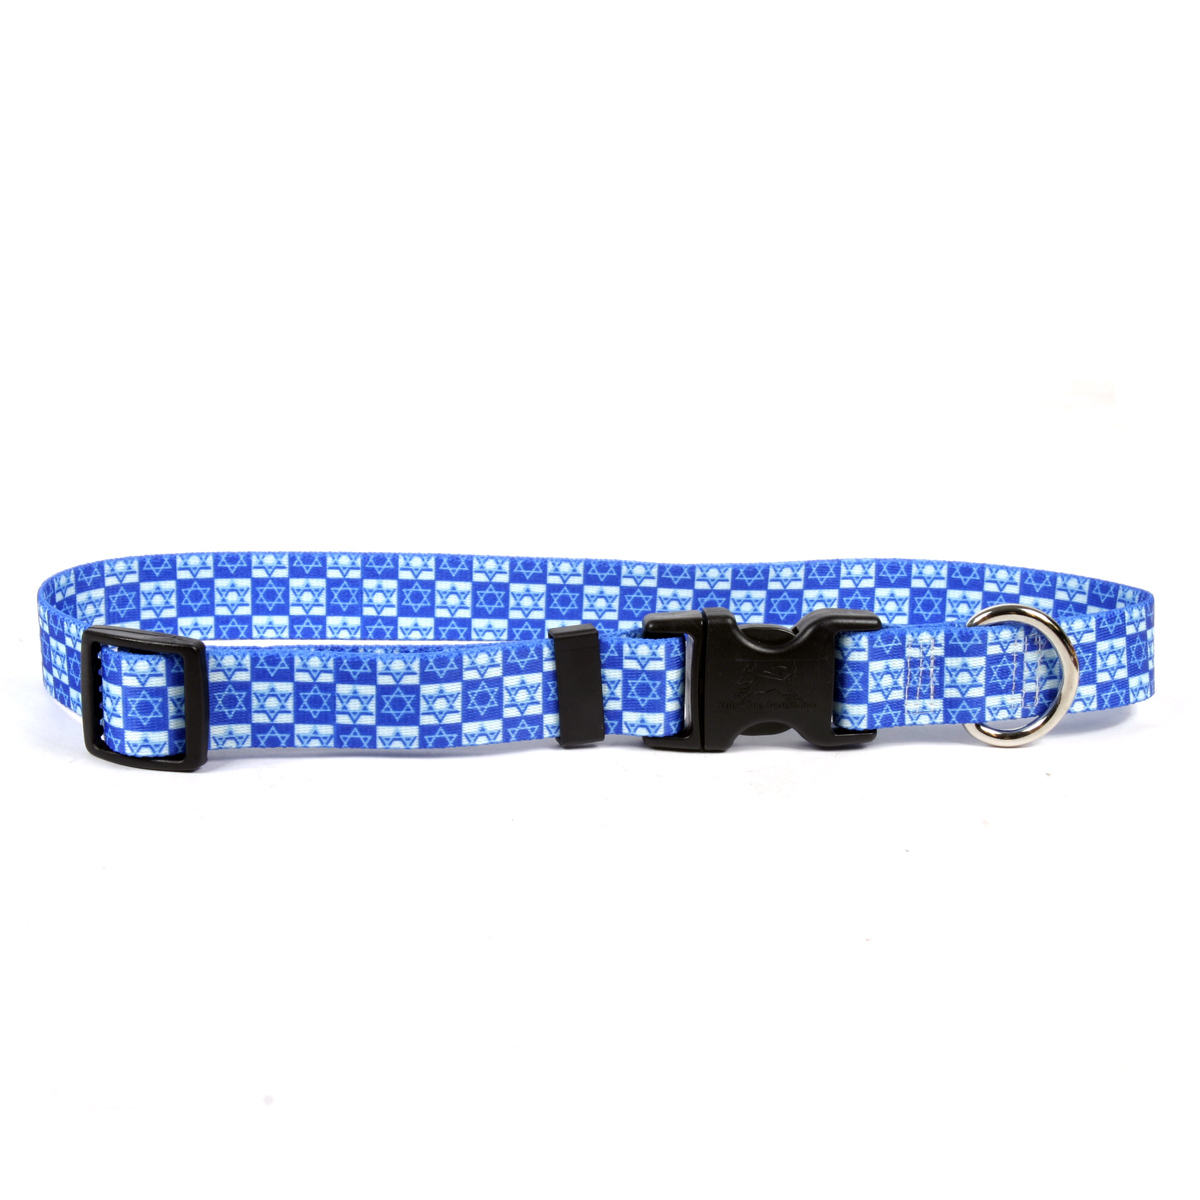 Yellow Dog Design Hanukkah Collar, Harness & Leash